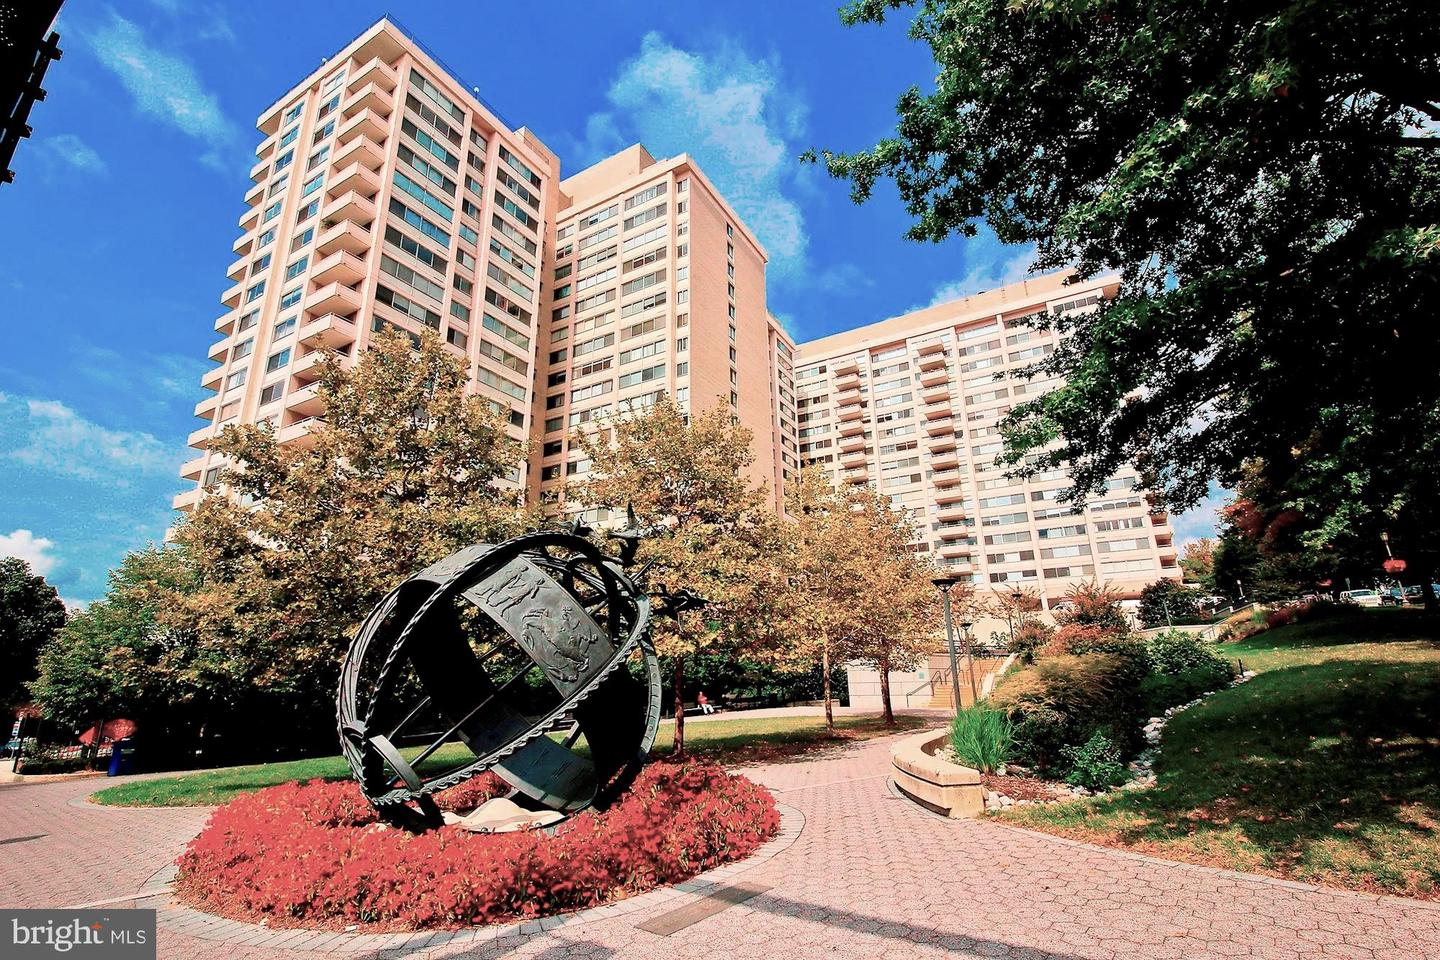 5500 Friendship Boulevard  #1004N - Chevy Chase, Maryland 20815